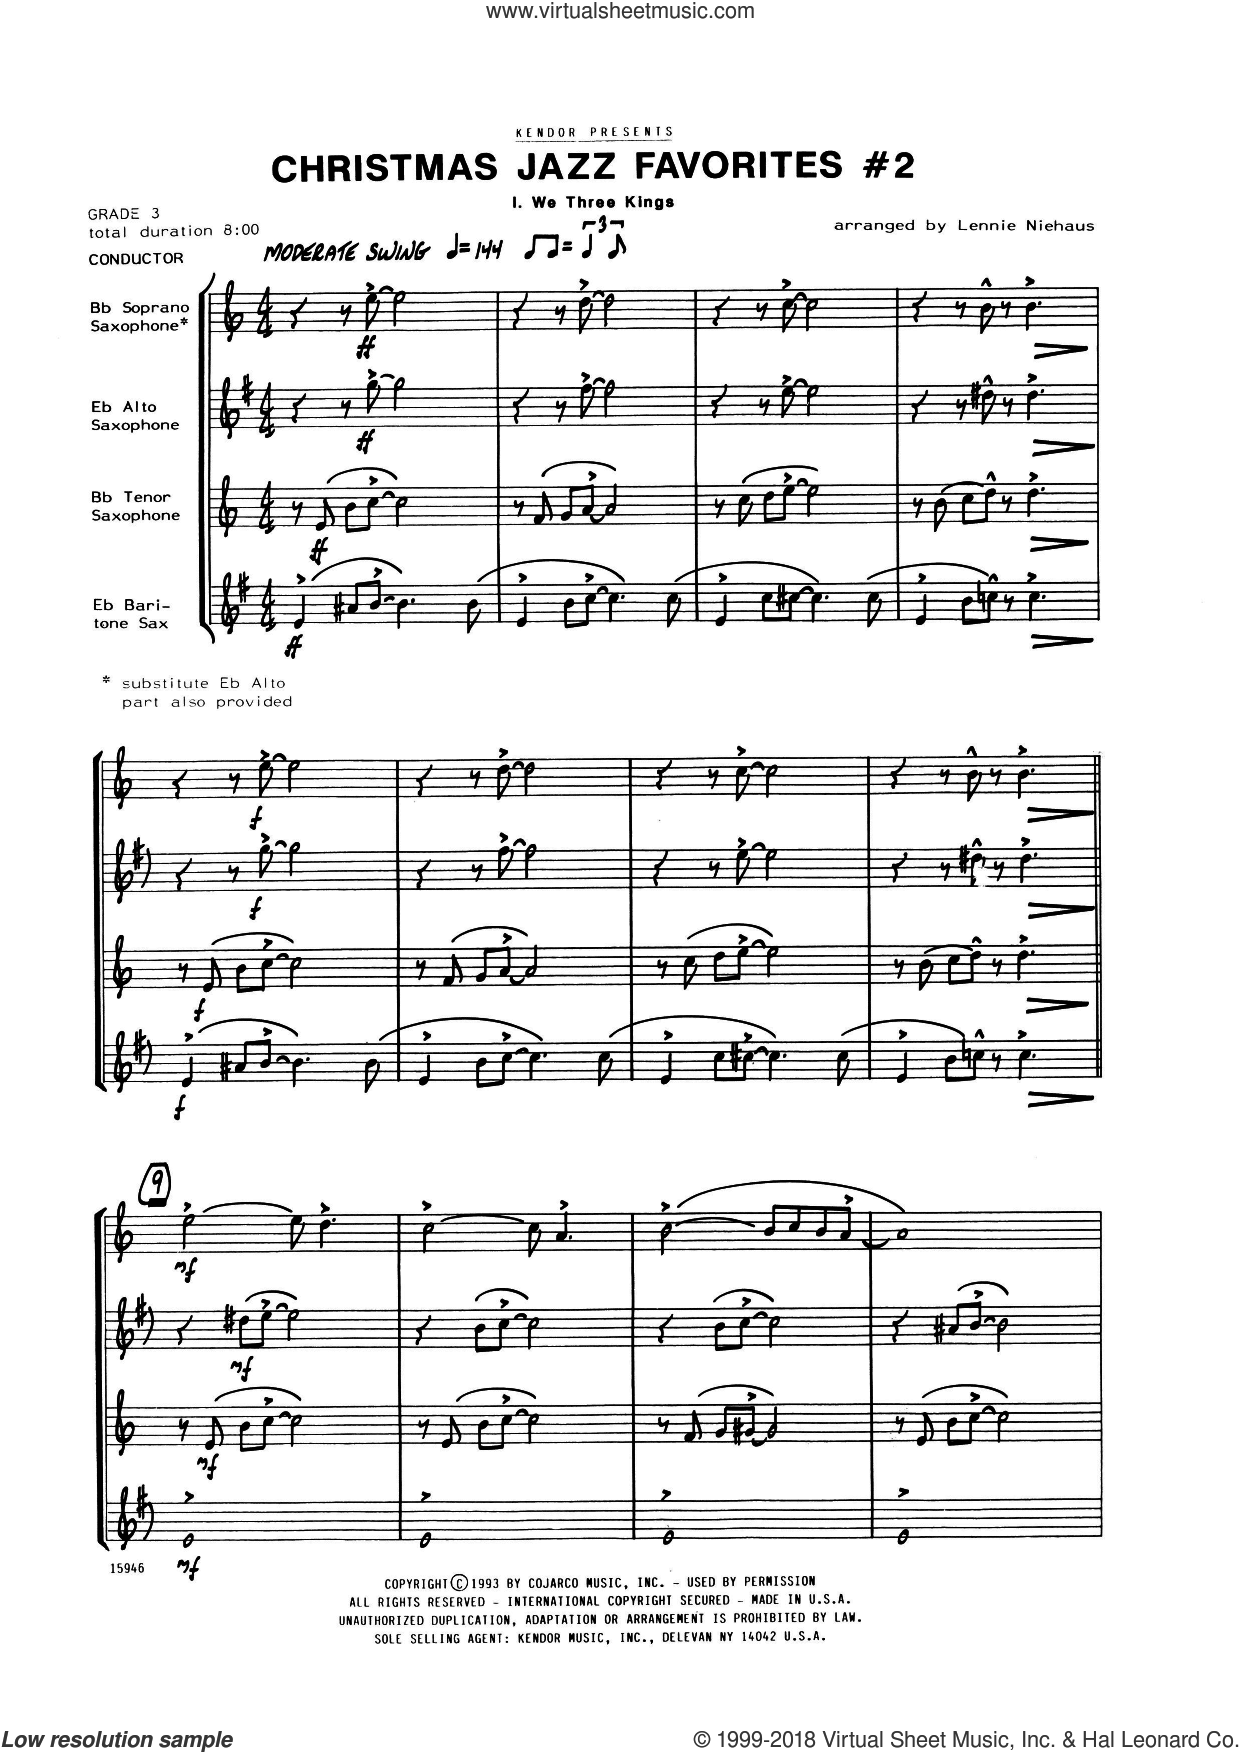 Christmas Jazz Favorites #2 (COMPLETE) sheet music for saxophone quartet by Lennie Niehaus, intermediate skill level